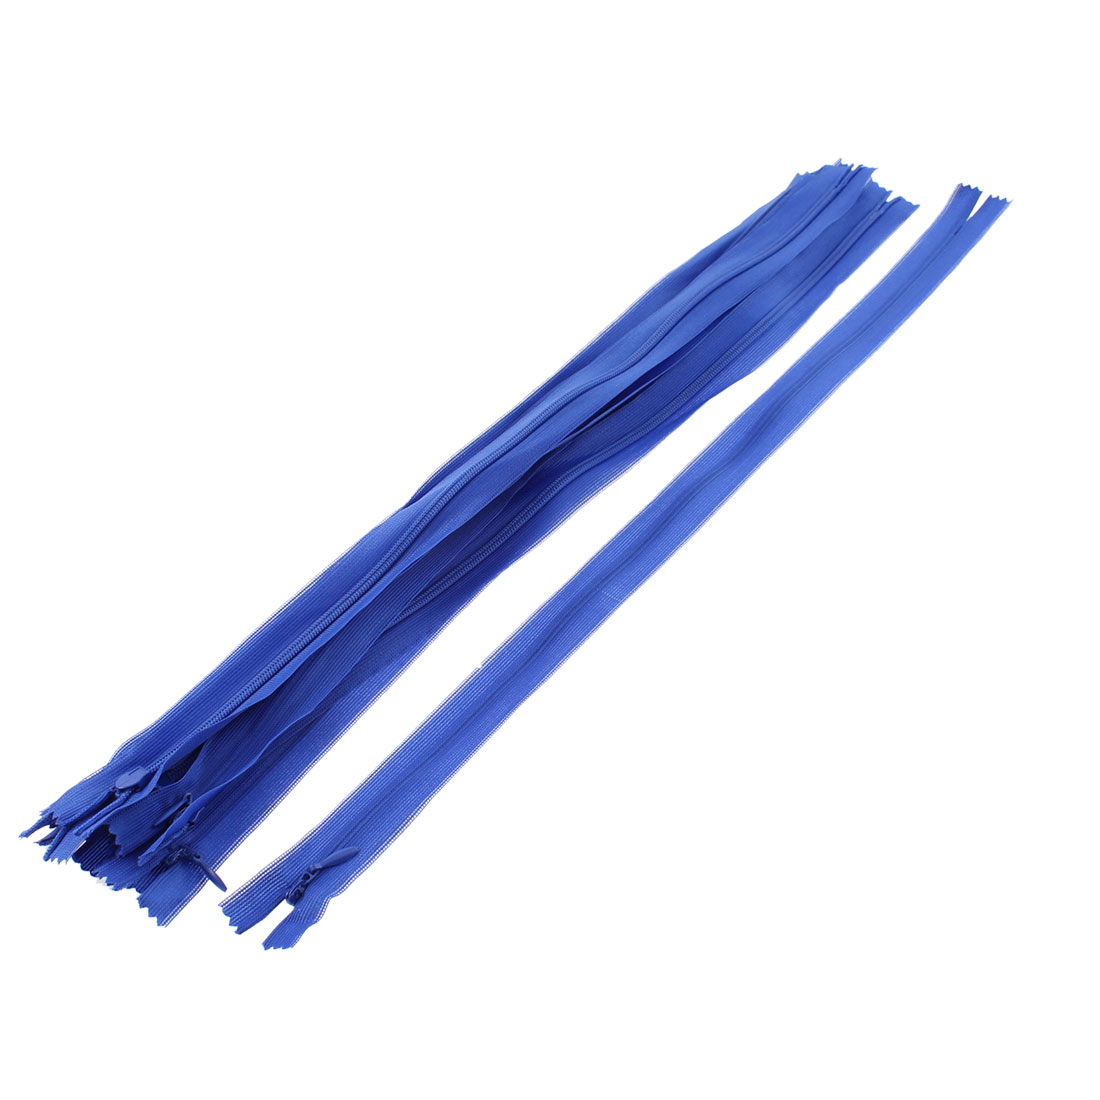 Dress Pants Closed End Nylon Zippers Tailor Sewing Craft Tool Blue 40cm 10 Pcs